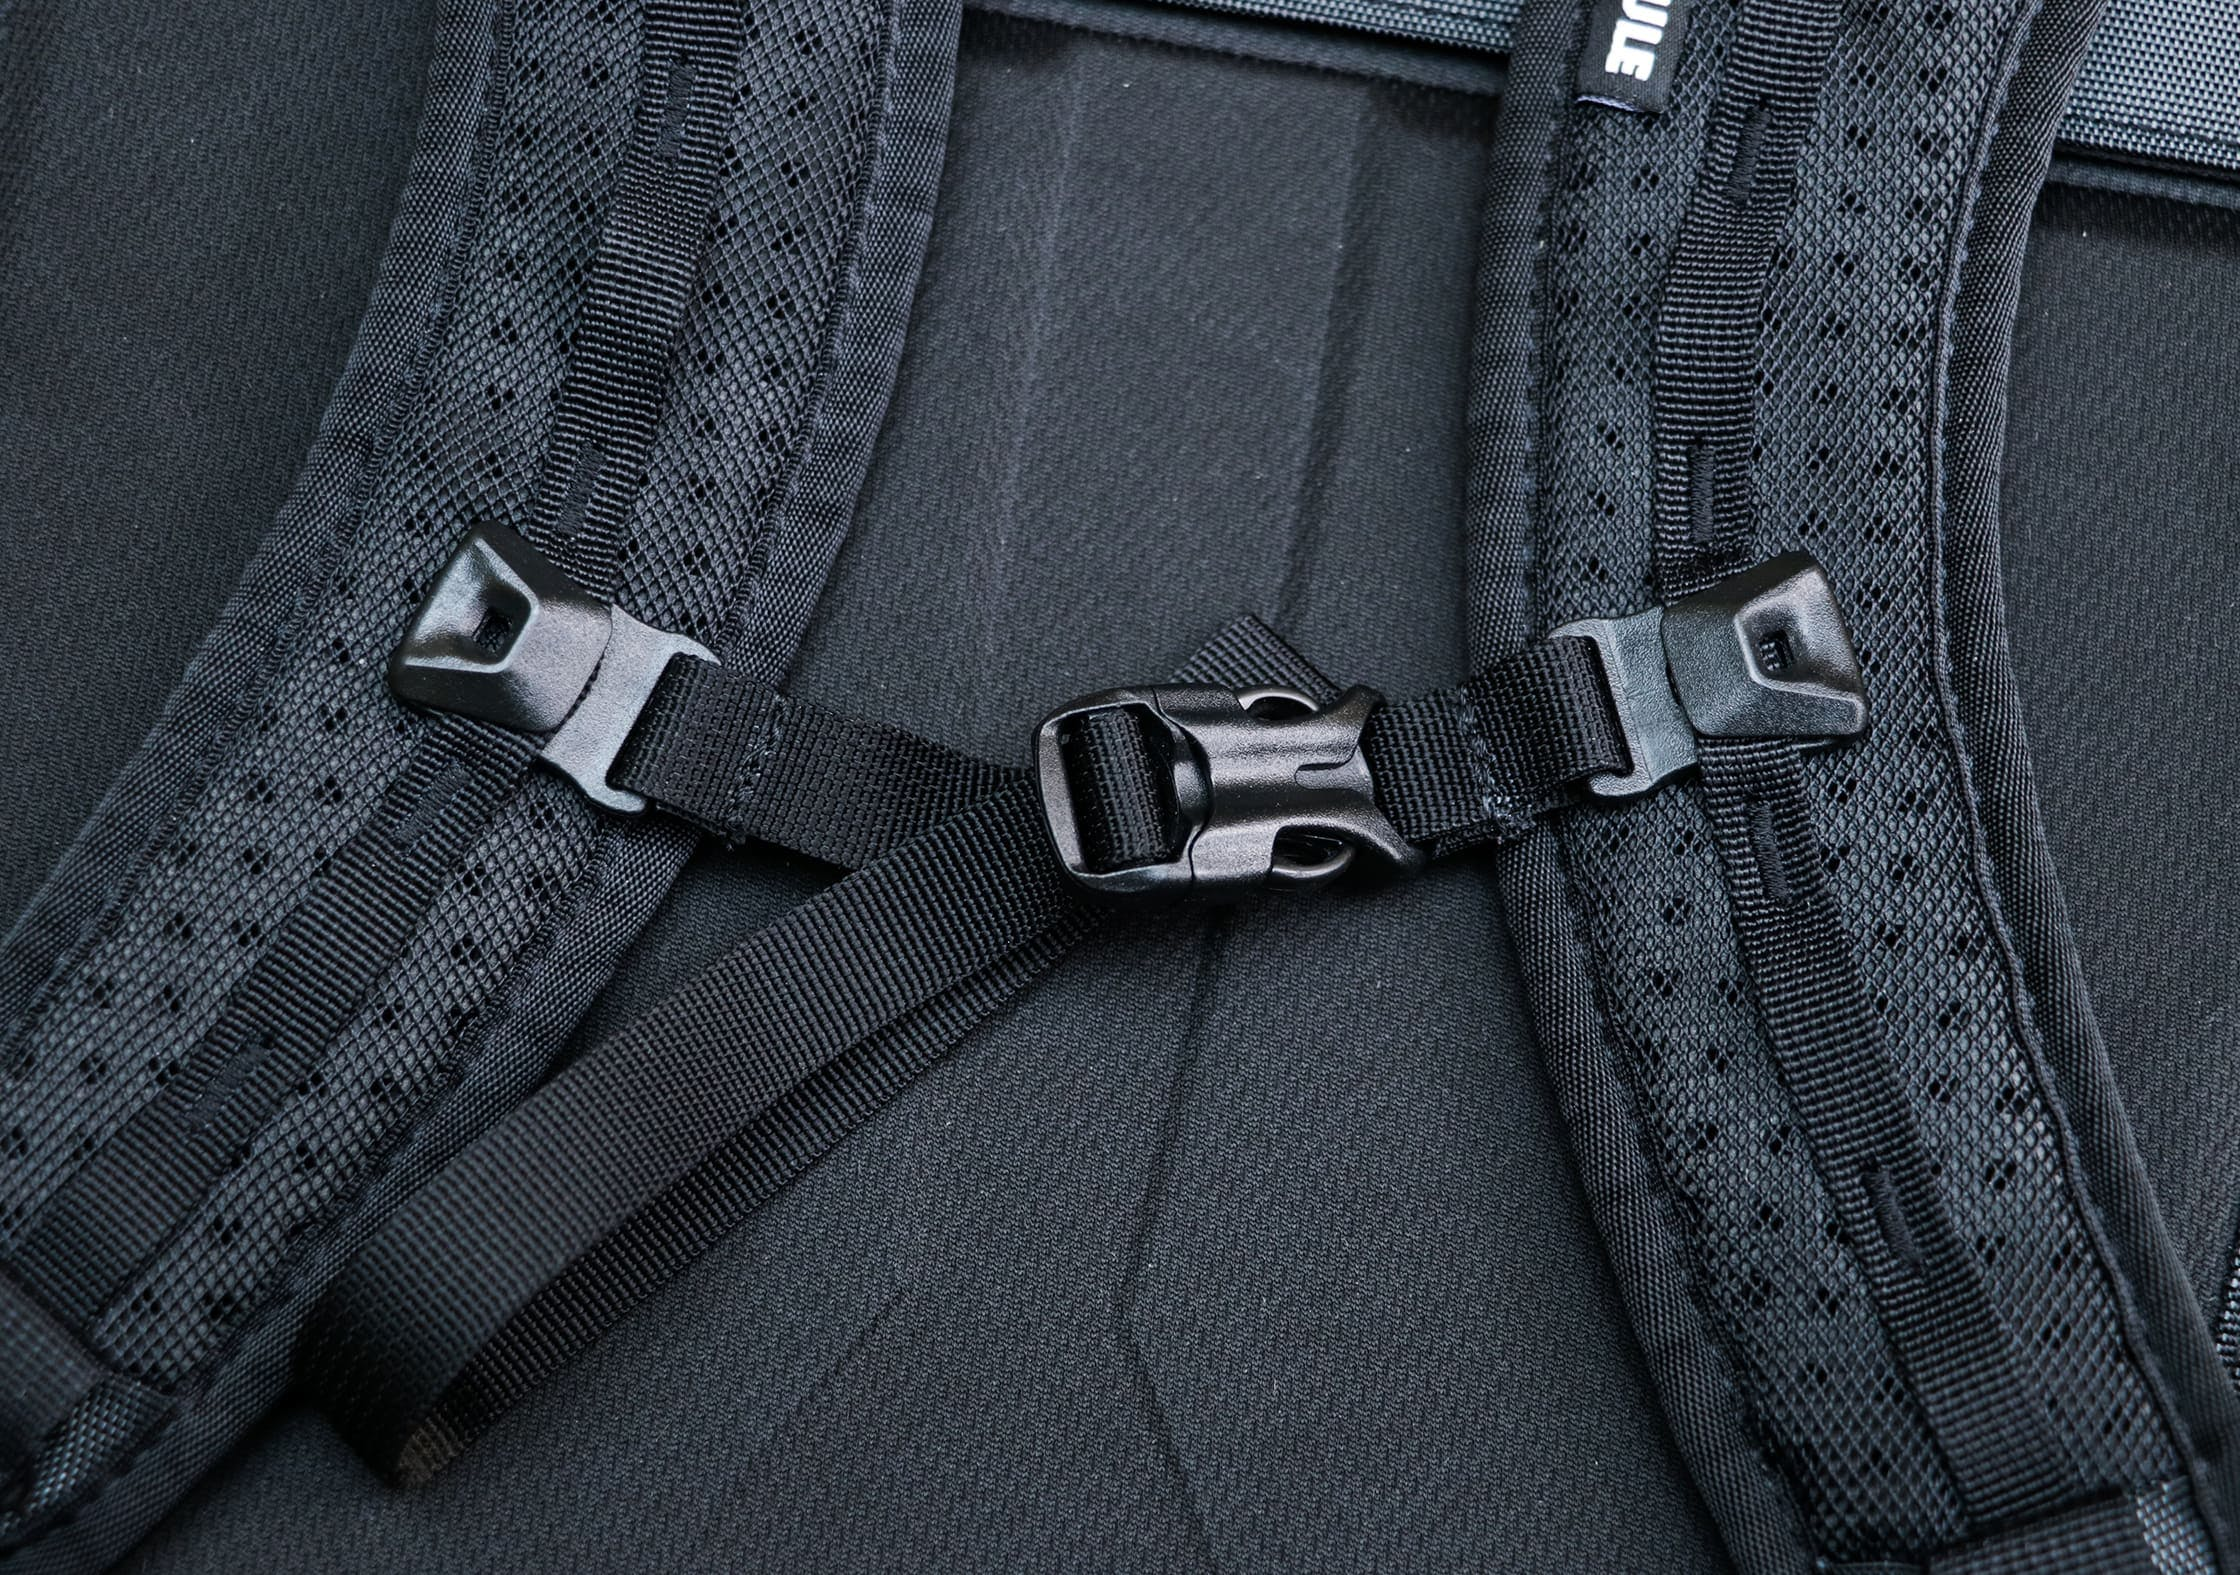 Sternum Strap on the Thule Subterra 34L